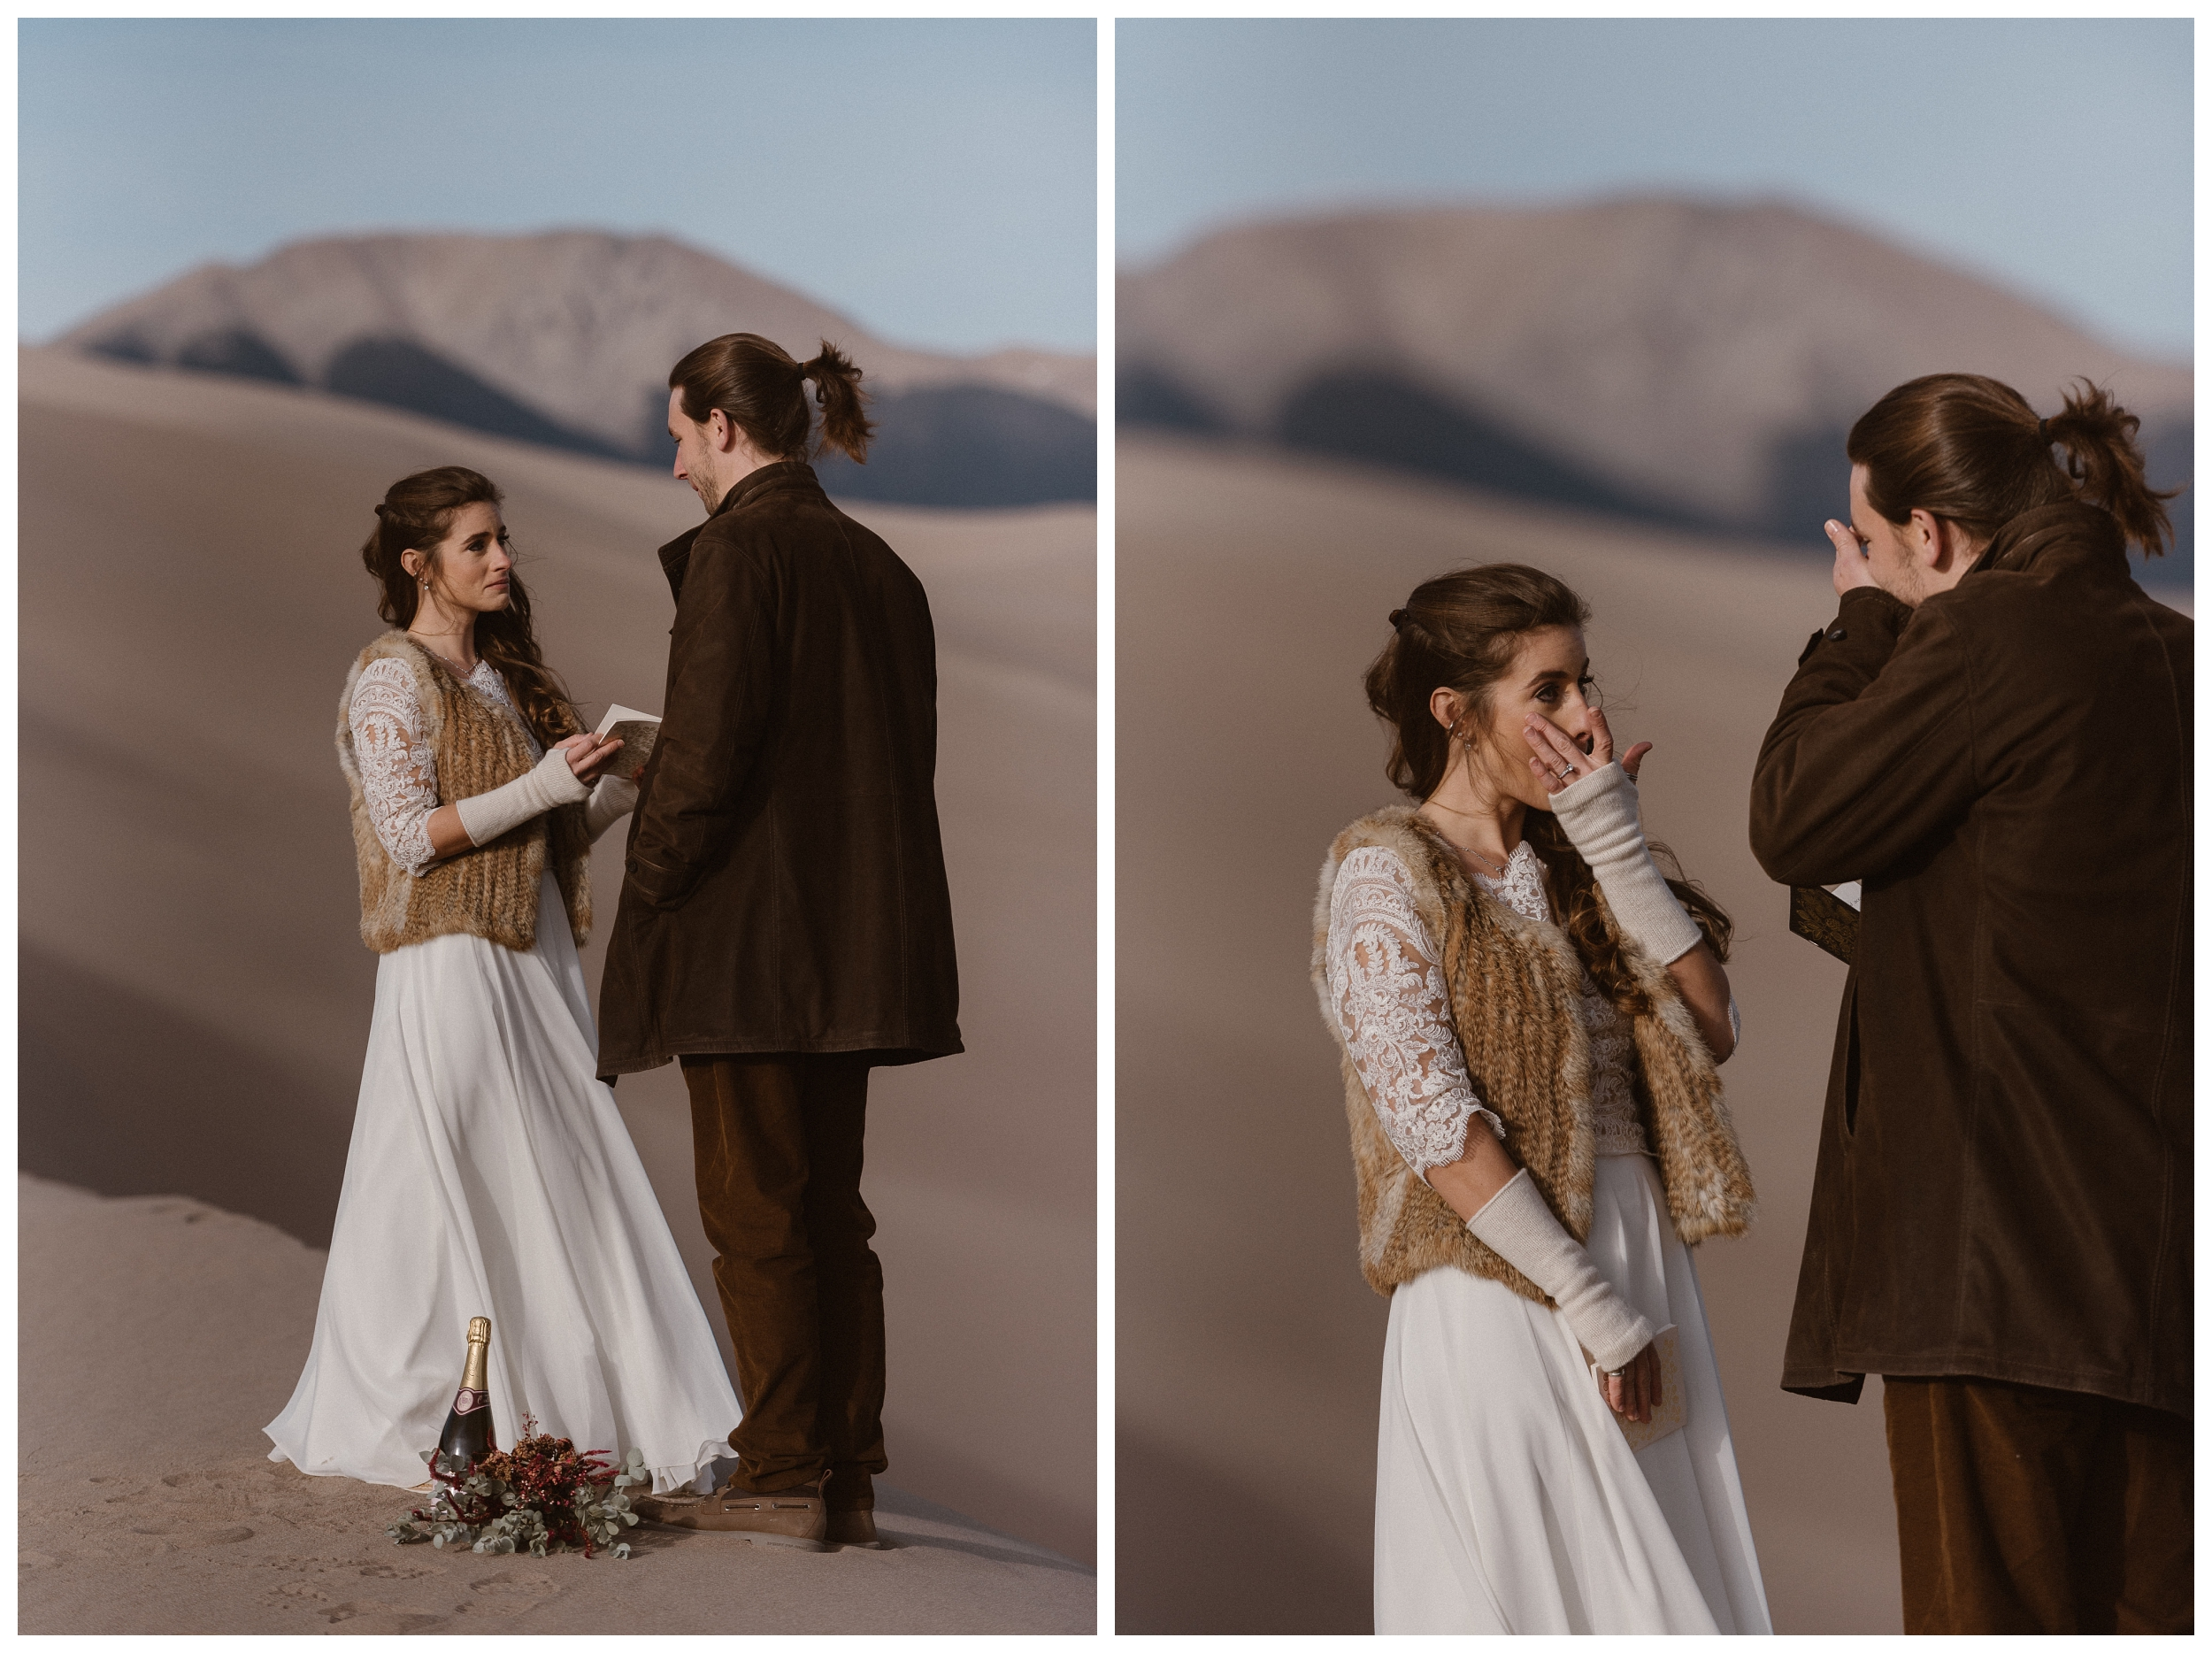 Emotions ran high during Olivia and Justin's private wedding ceremony that was just the two of them in the midst of huge sand dunes in Southern Colorado. Photo by Maddie Mae Photo, Adventures Instead.